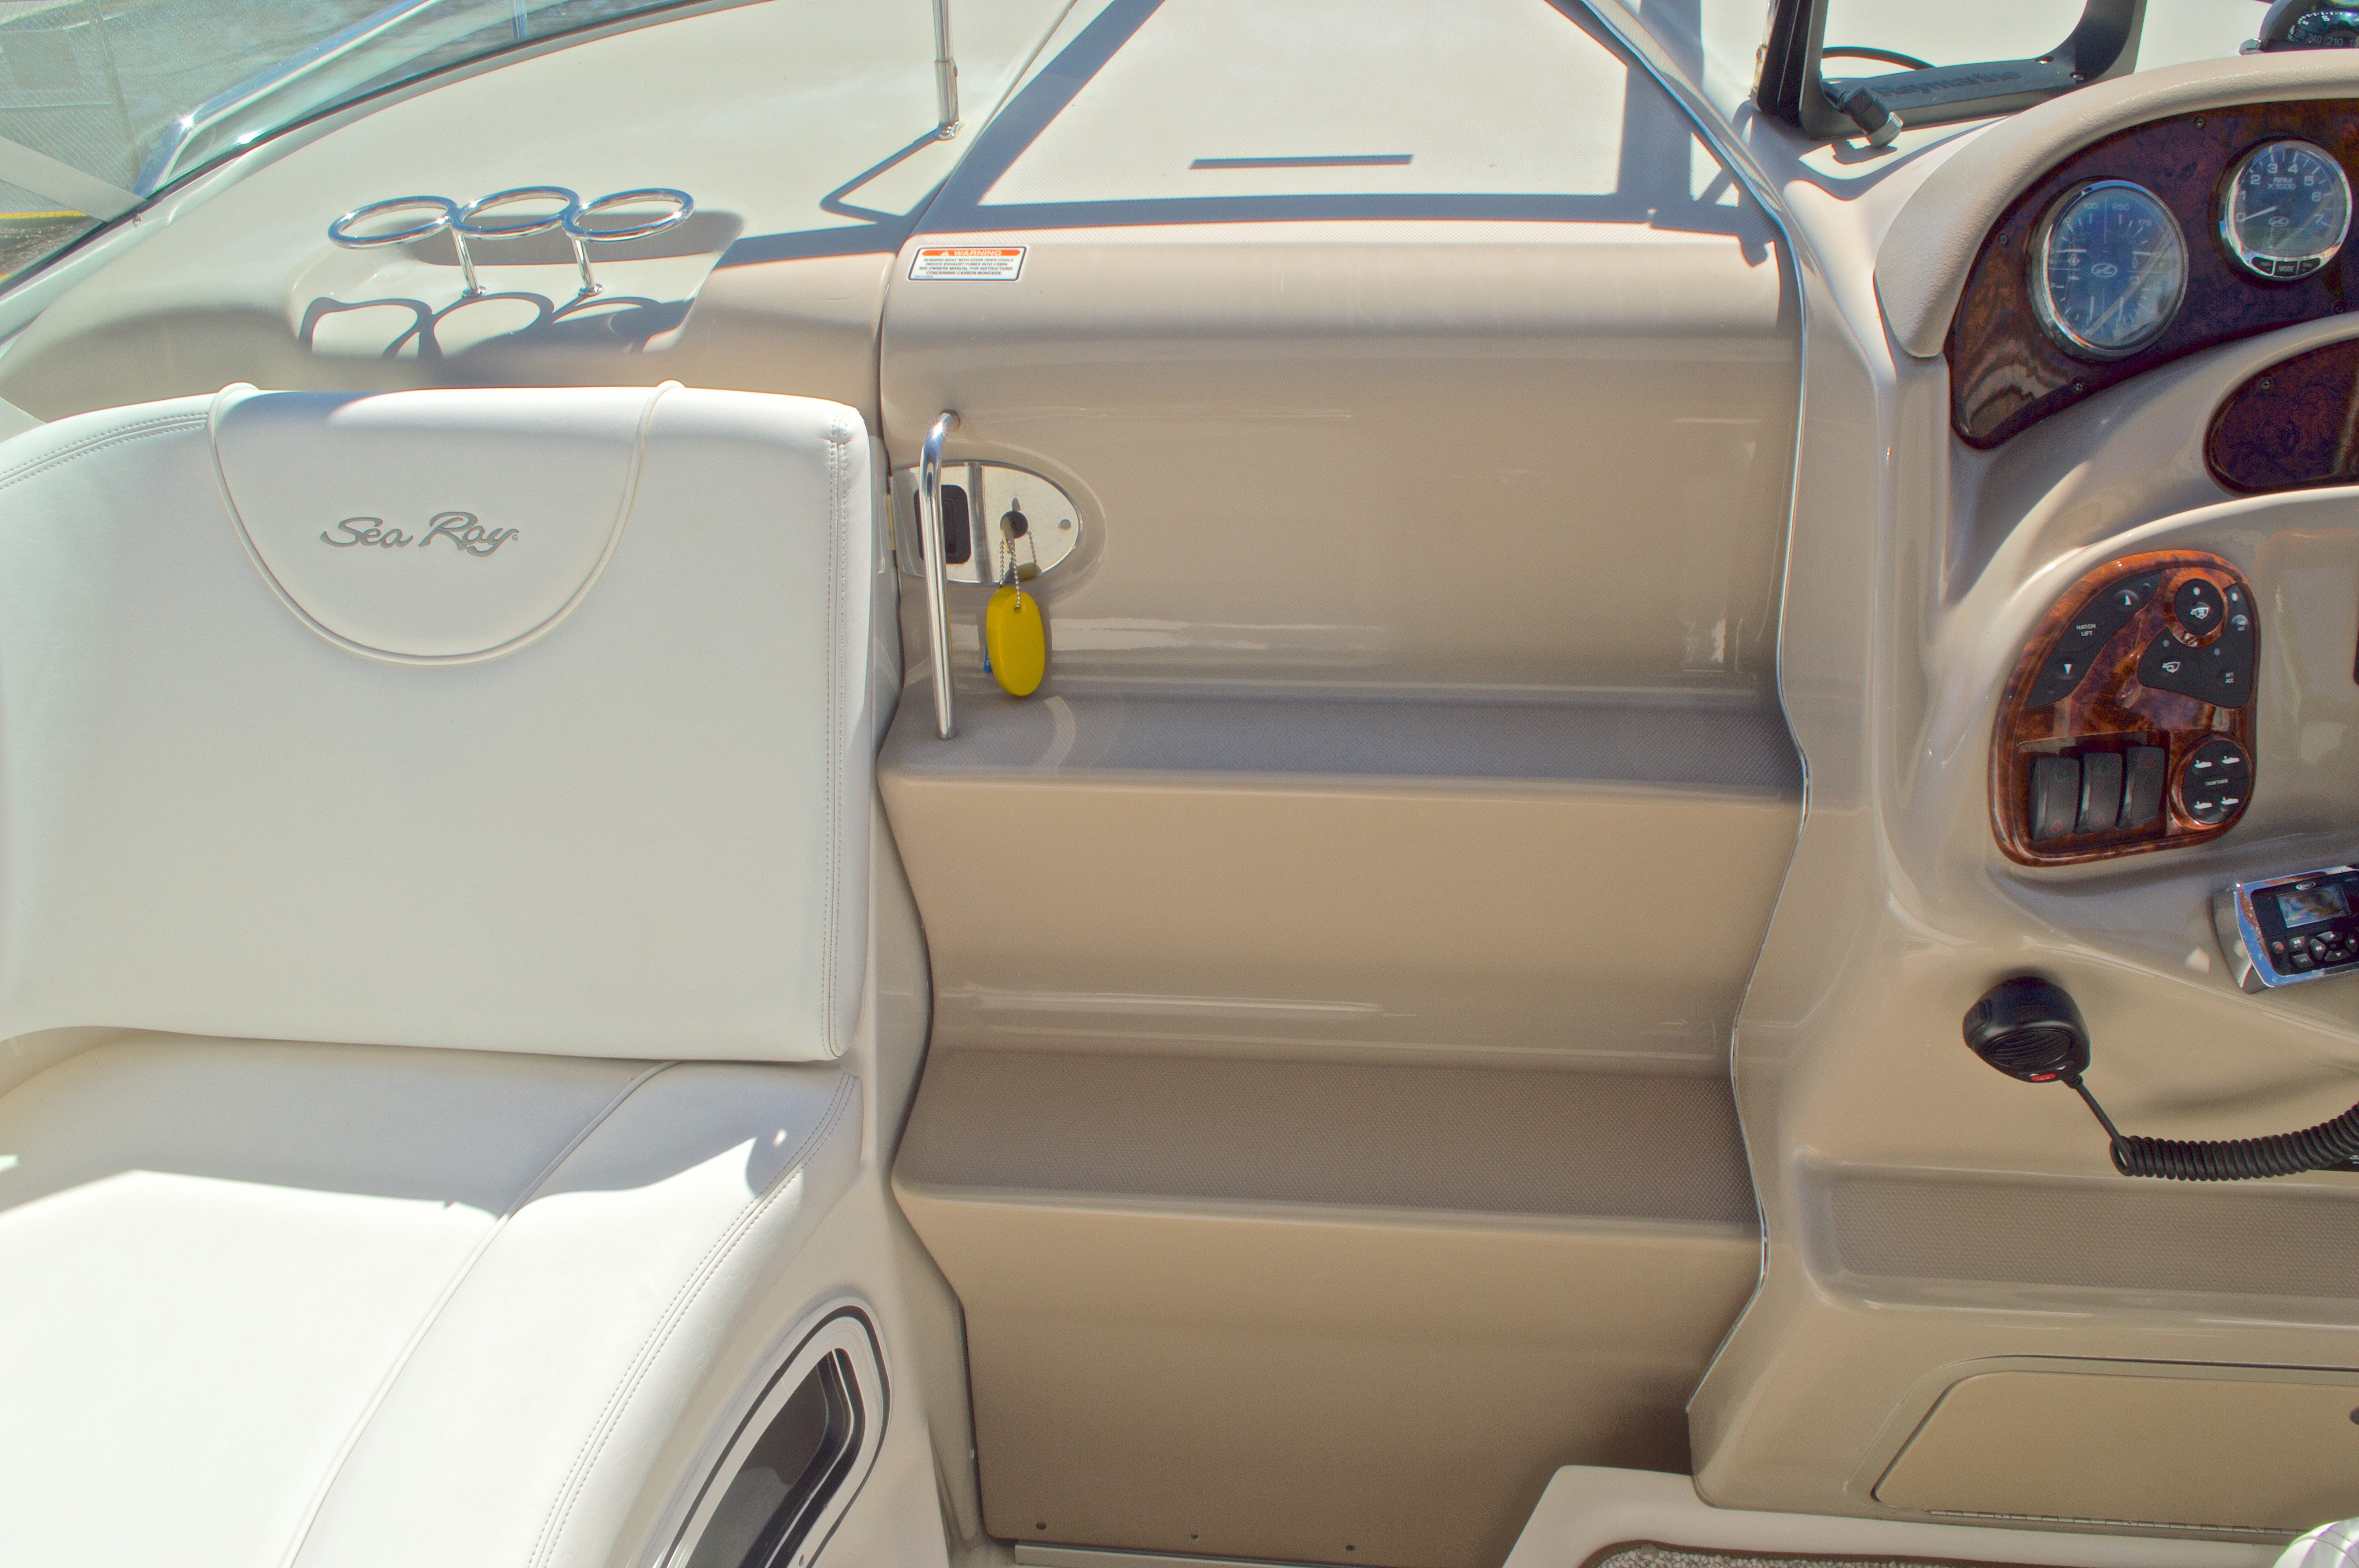 Thumbnail 45 for Used 2005 Sea Ray 280 Sundancer boat for sale in West Palm Beach, FL